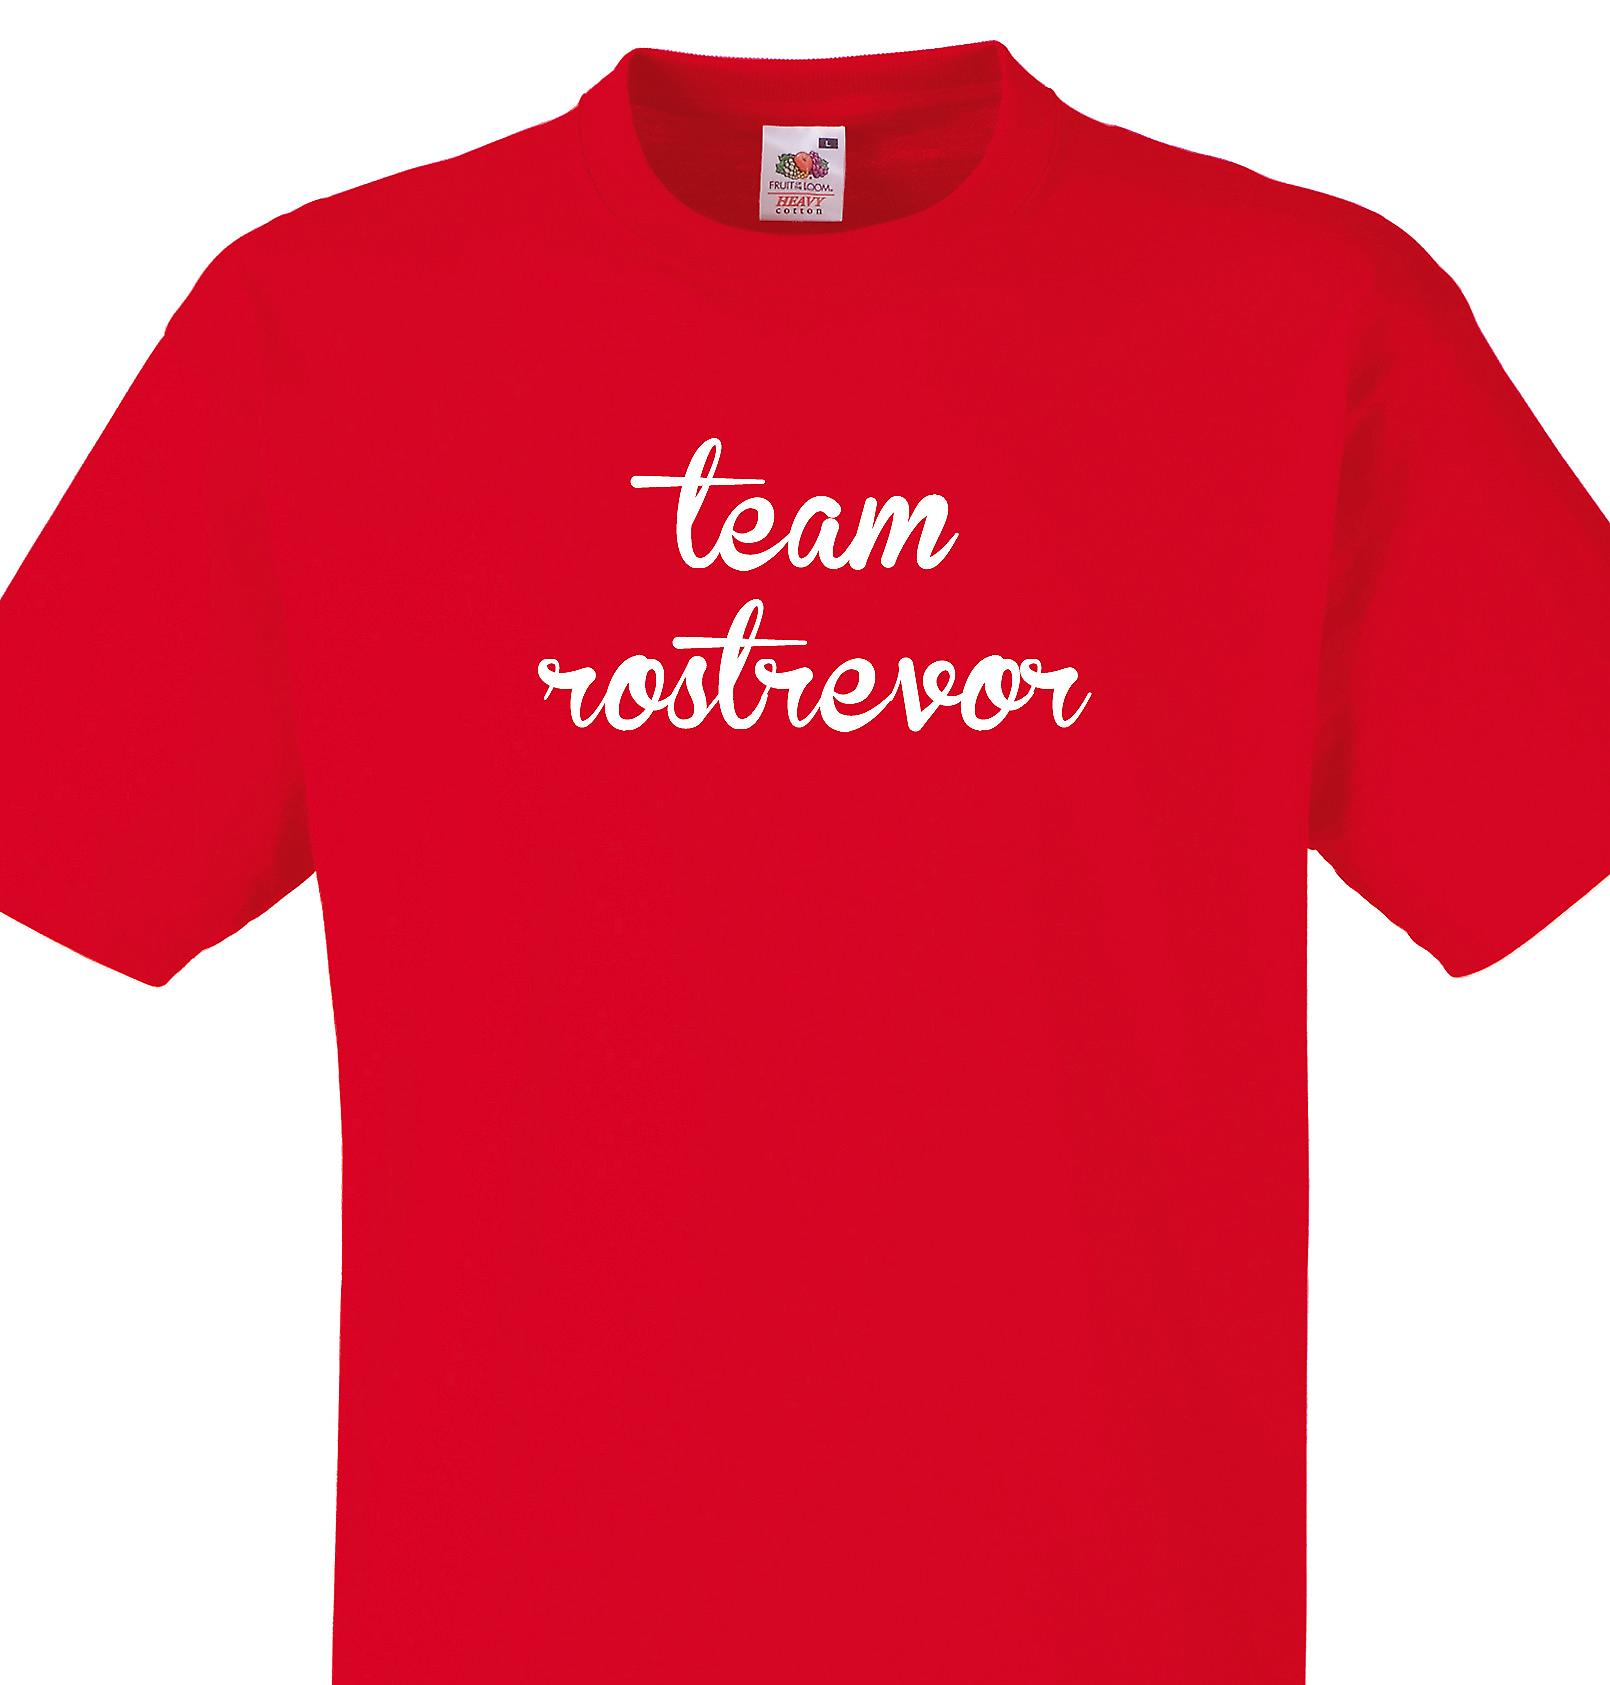 Team Rostrevor Red T shirt